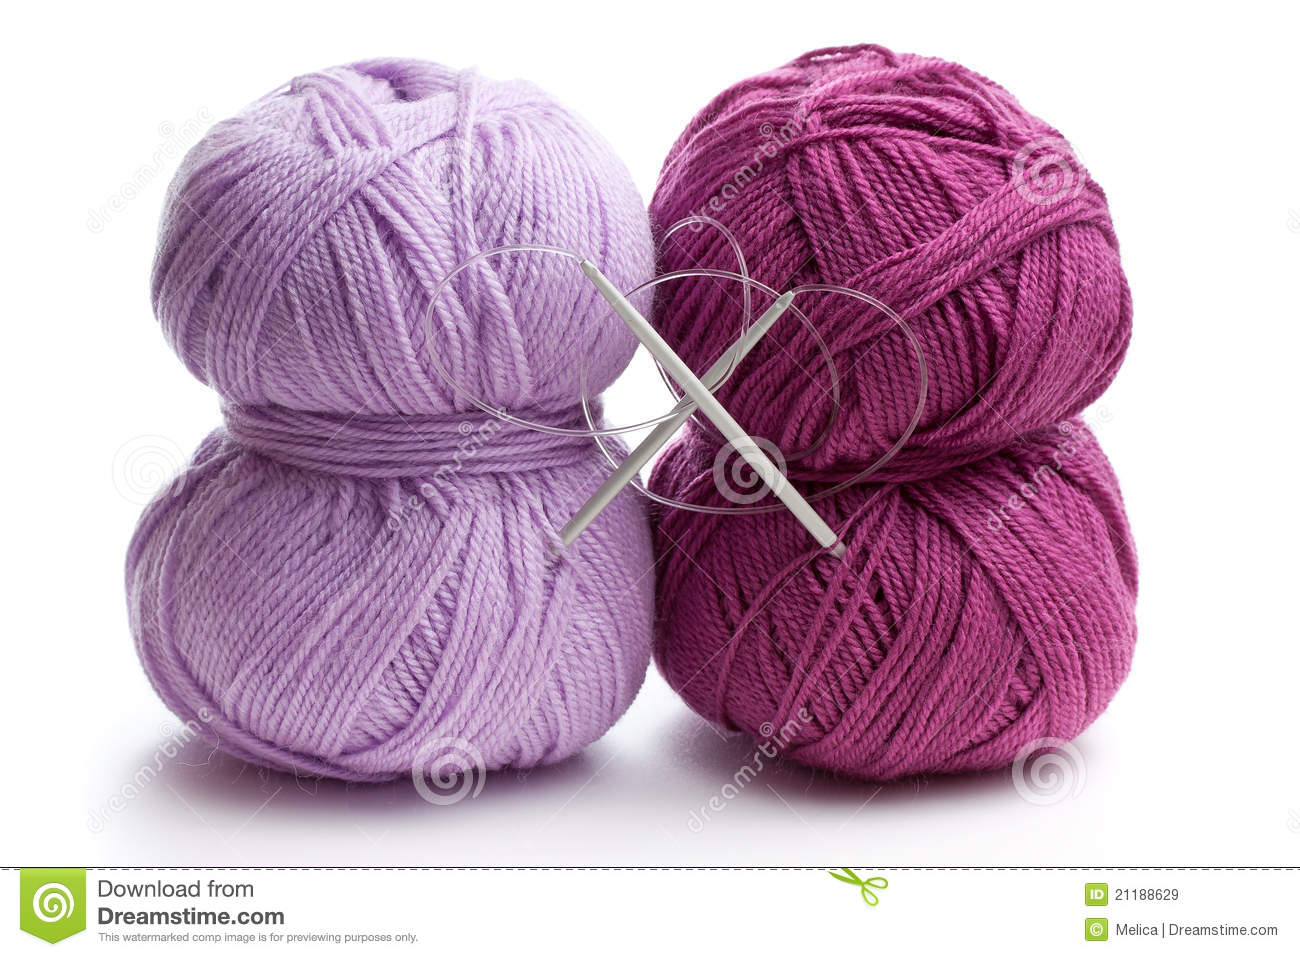 Royalty Free Stock Images: Knitting Yarn